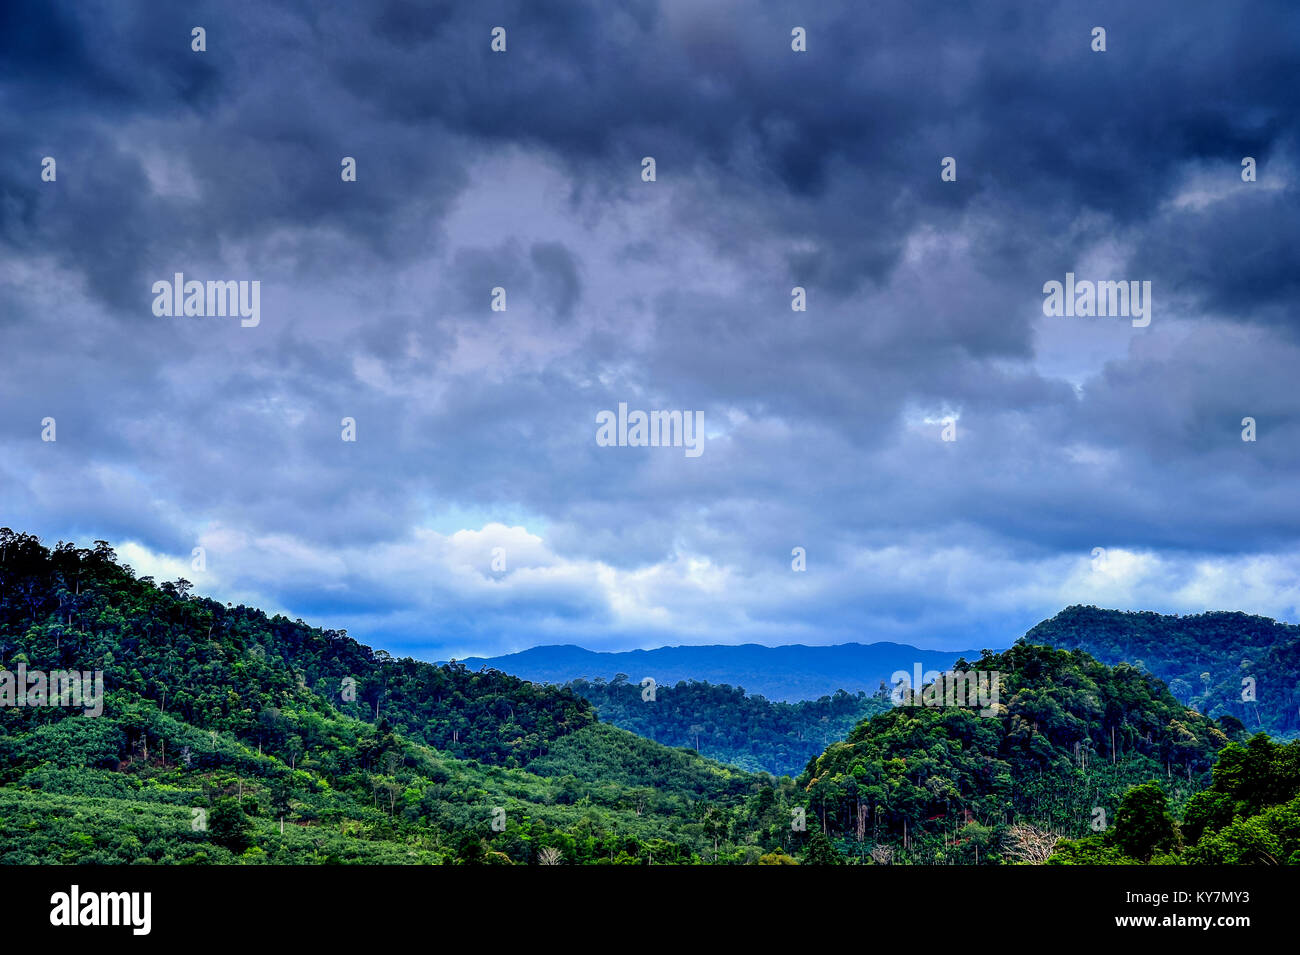 Rural view of mountain with raincloud - Stock Image